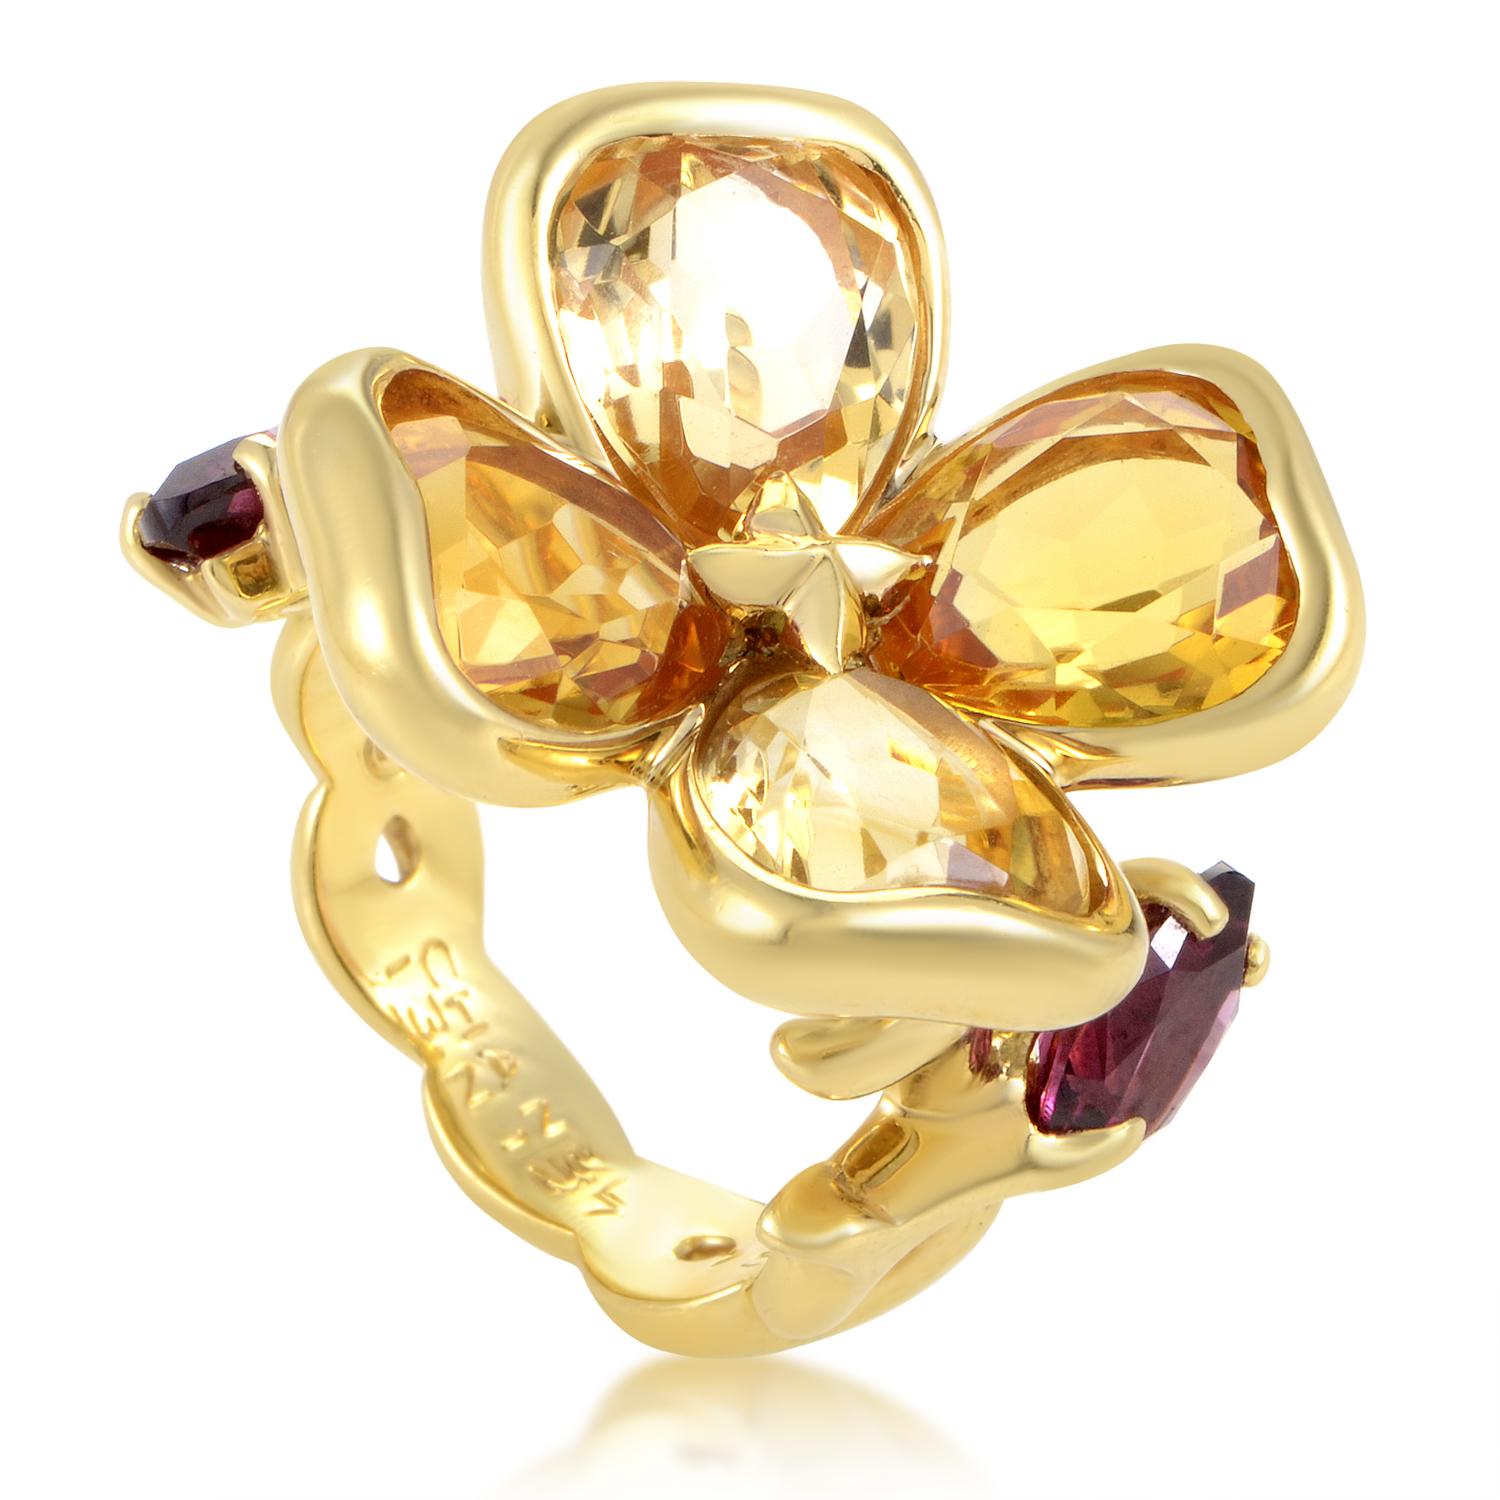 Chanel Women's 18K Yellow Gold Citrine & Rhodolite Garnet Flower Ring